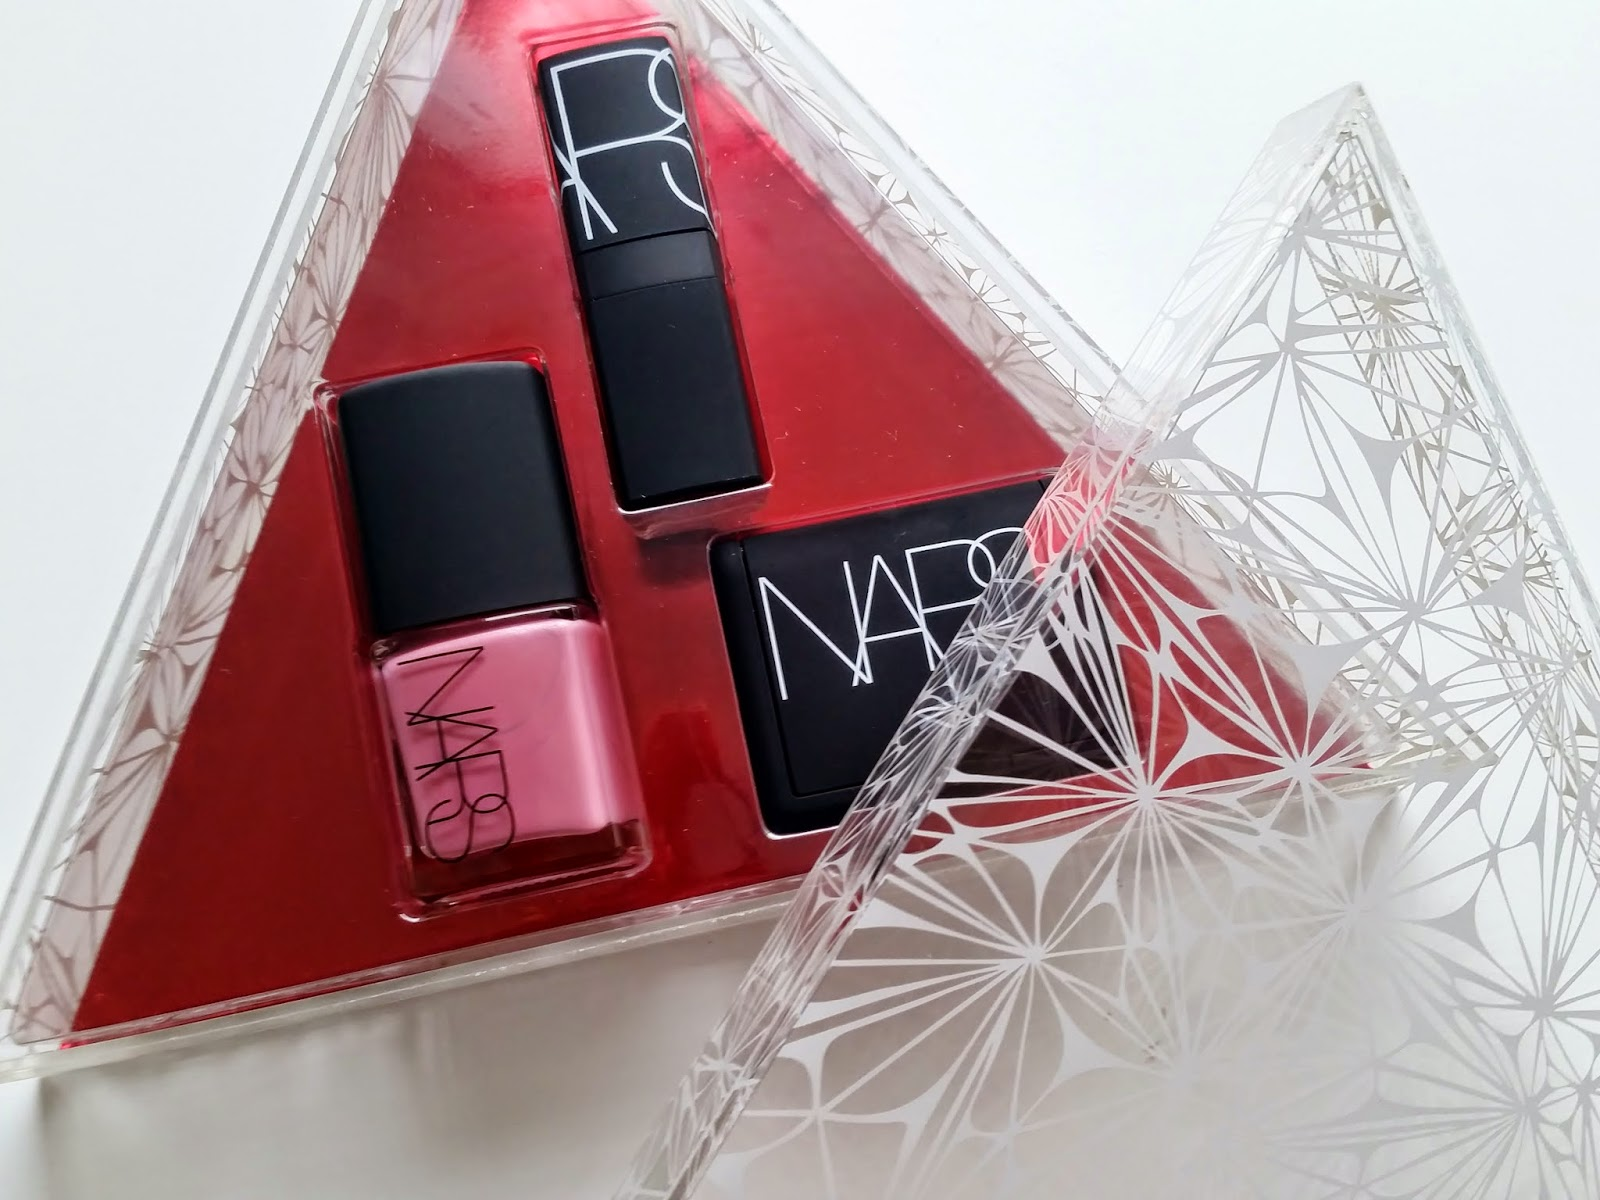 NARS Modern Future Roman Holiday Lip, Cheek & Nails Set